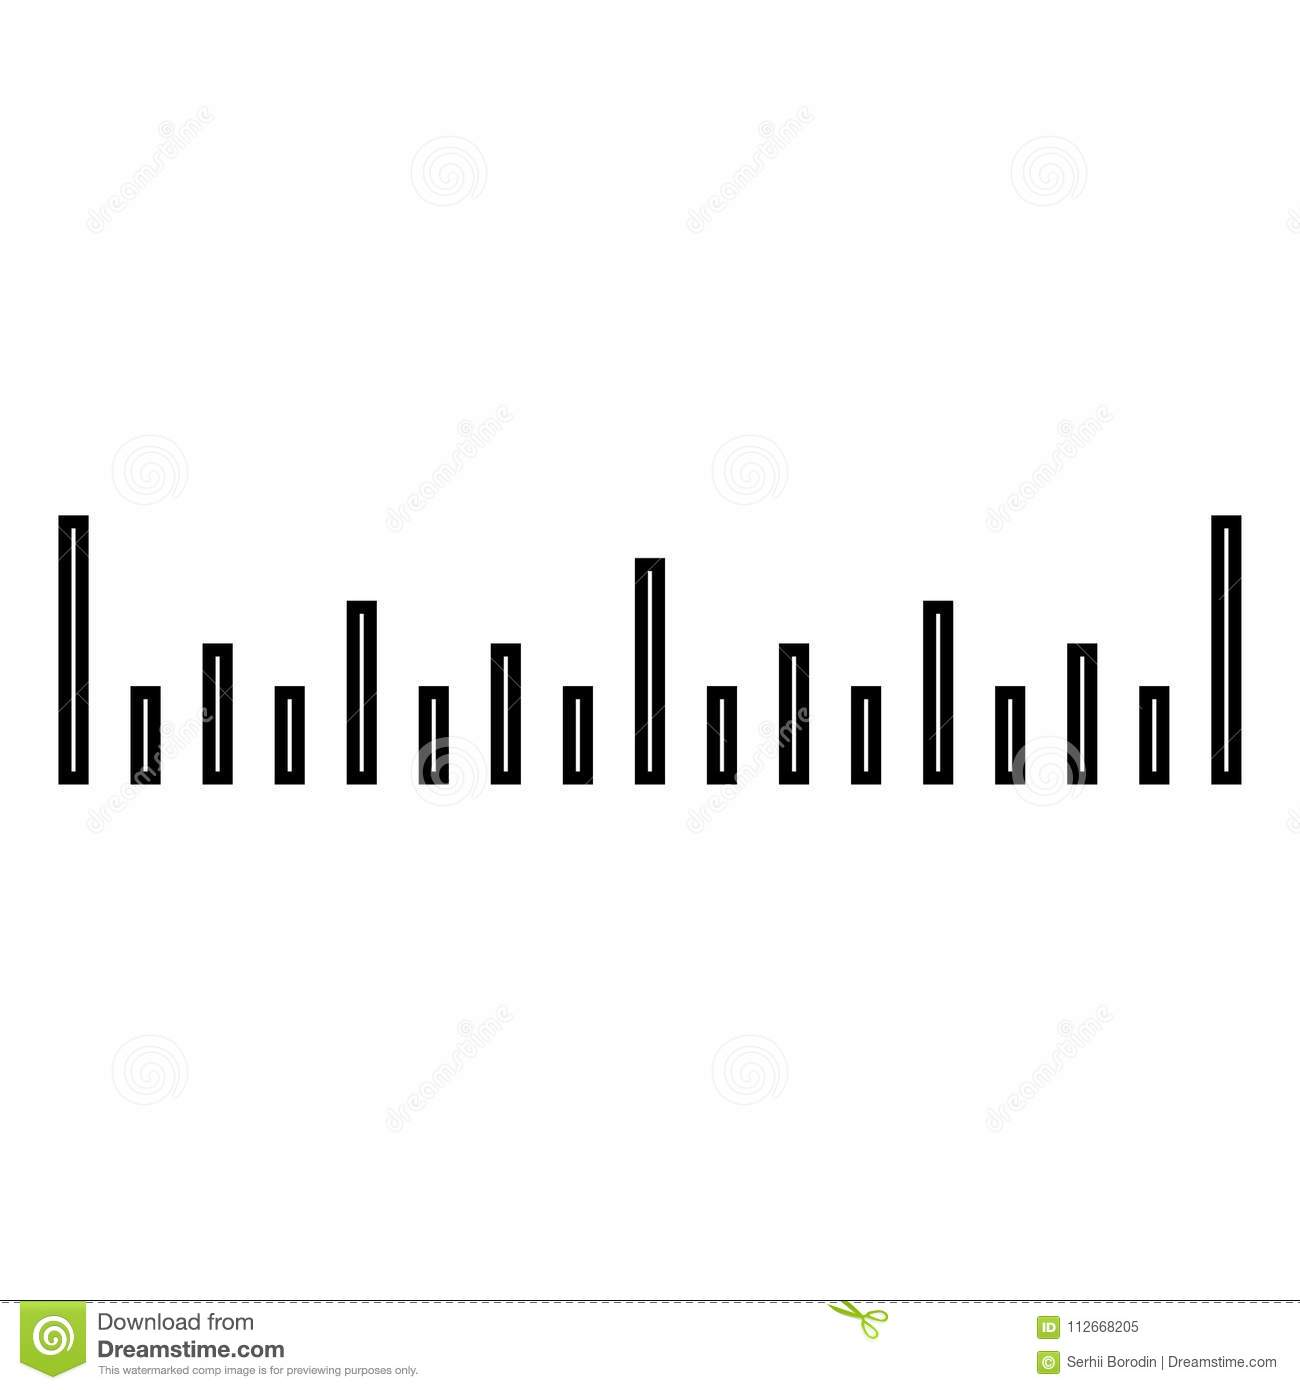 scale ruler icon black color illustration flat style simple image